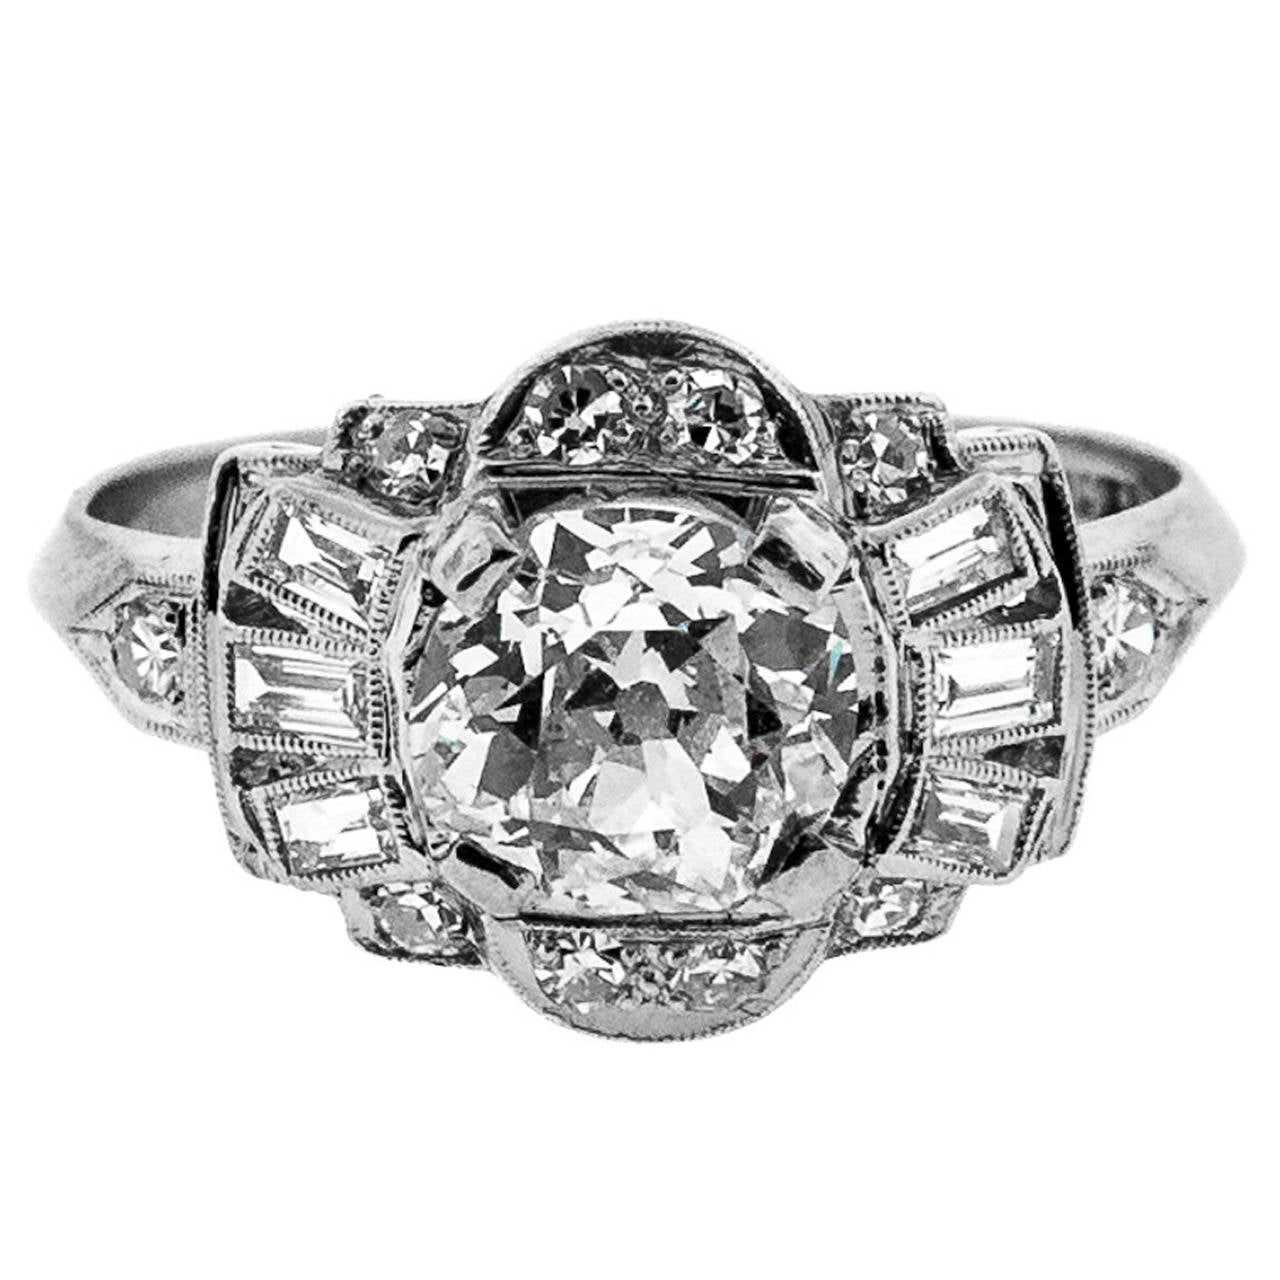 cusion cushion premier stewart weddings forevermark ring gold gem martha cut engagement rings white diamond vert in